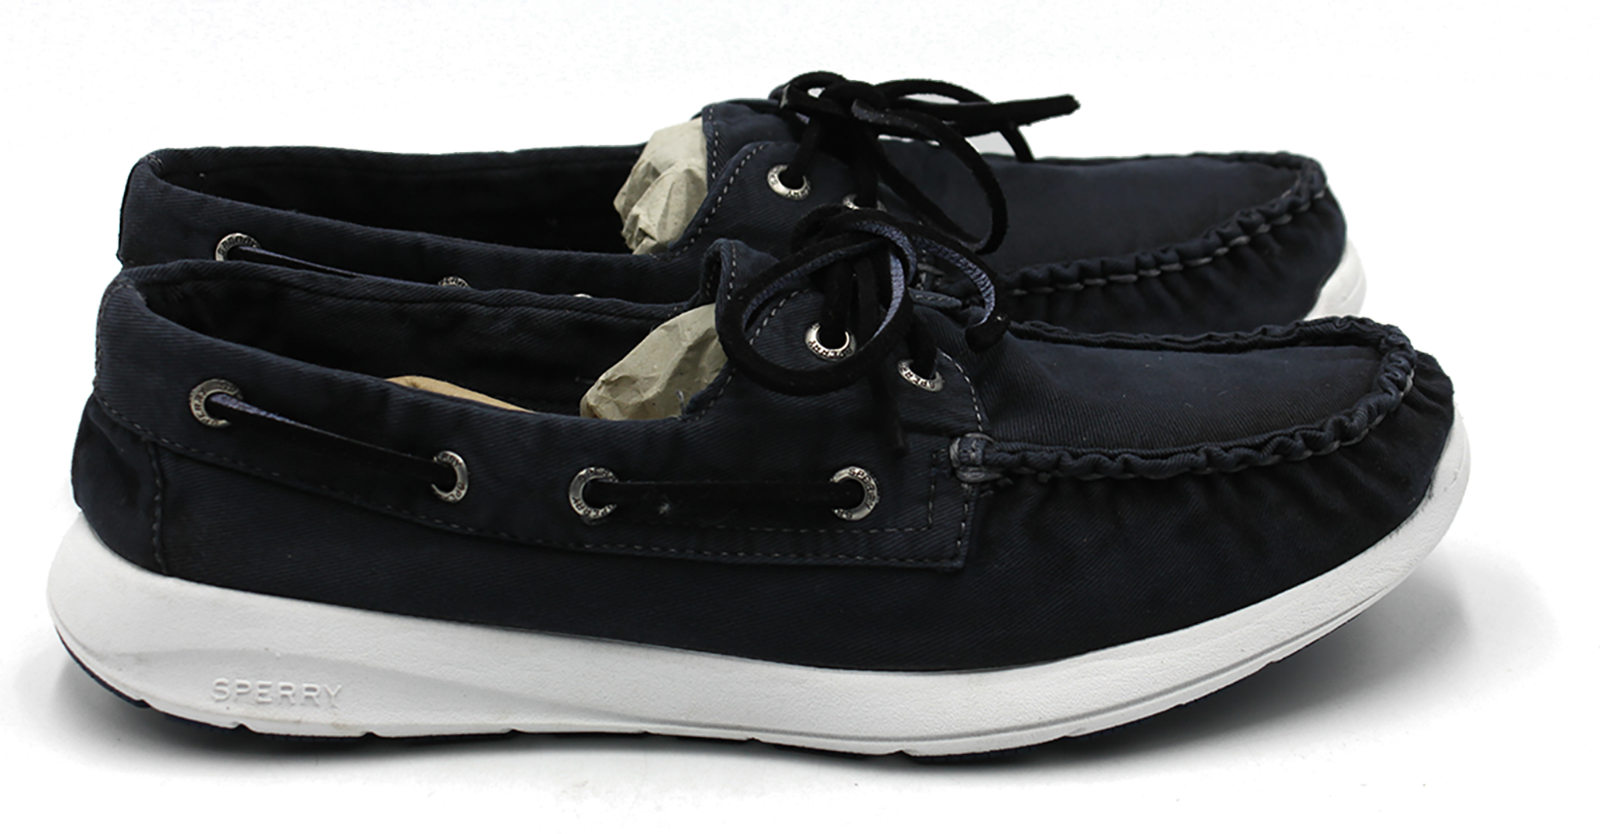 SPERRY Sojourn Canvas Men's Top-Sider Boat shoes Navy Size 8.5